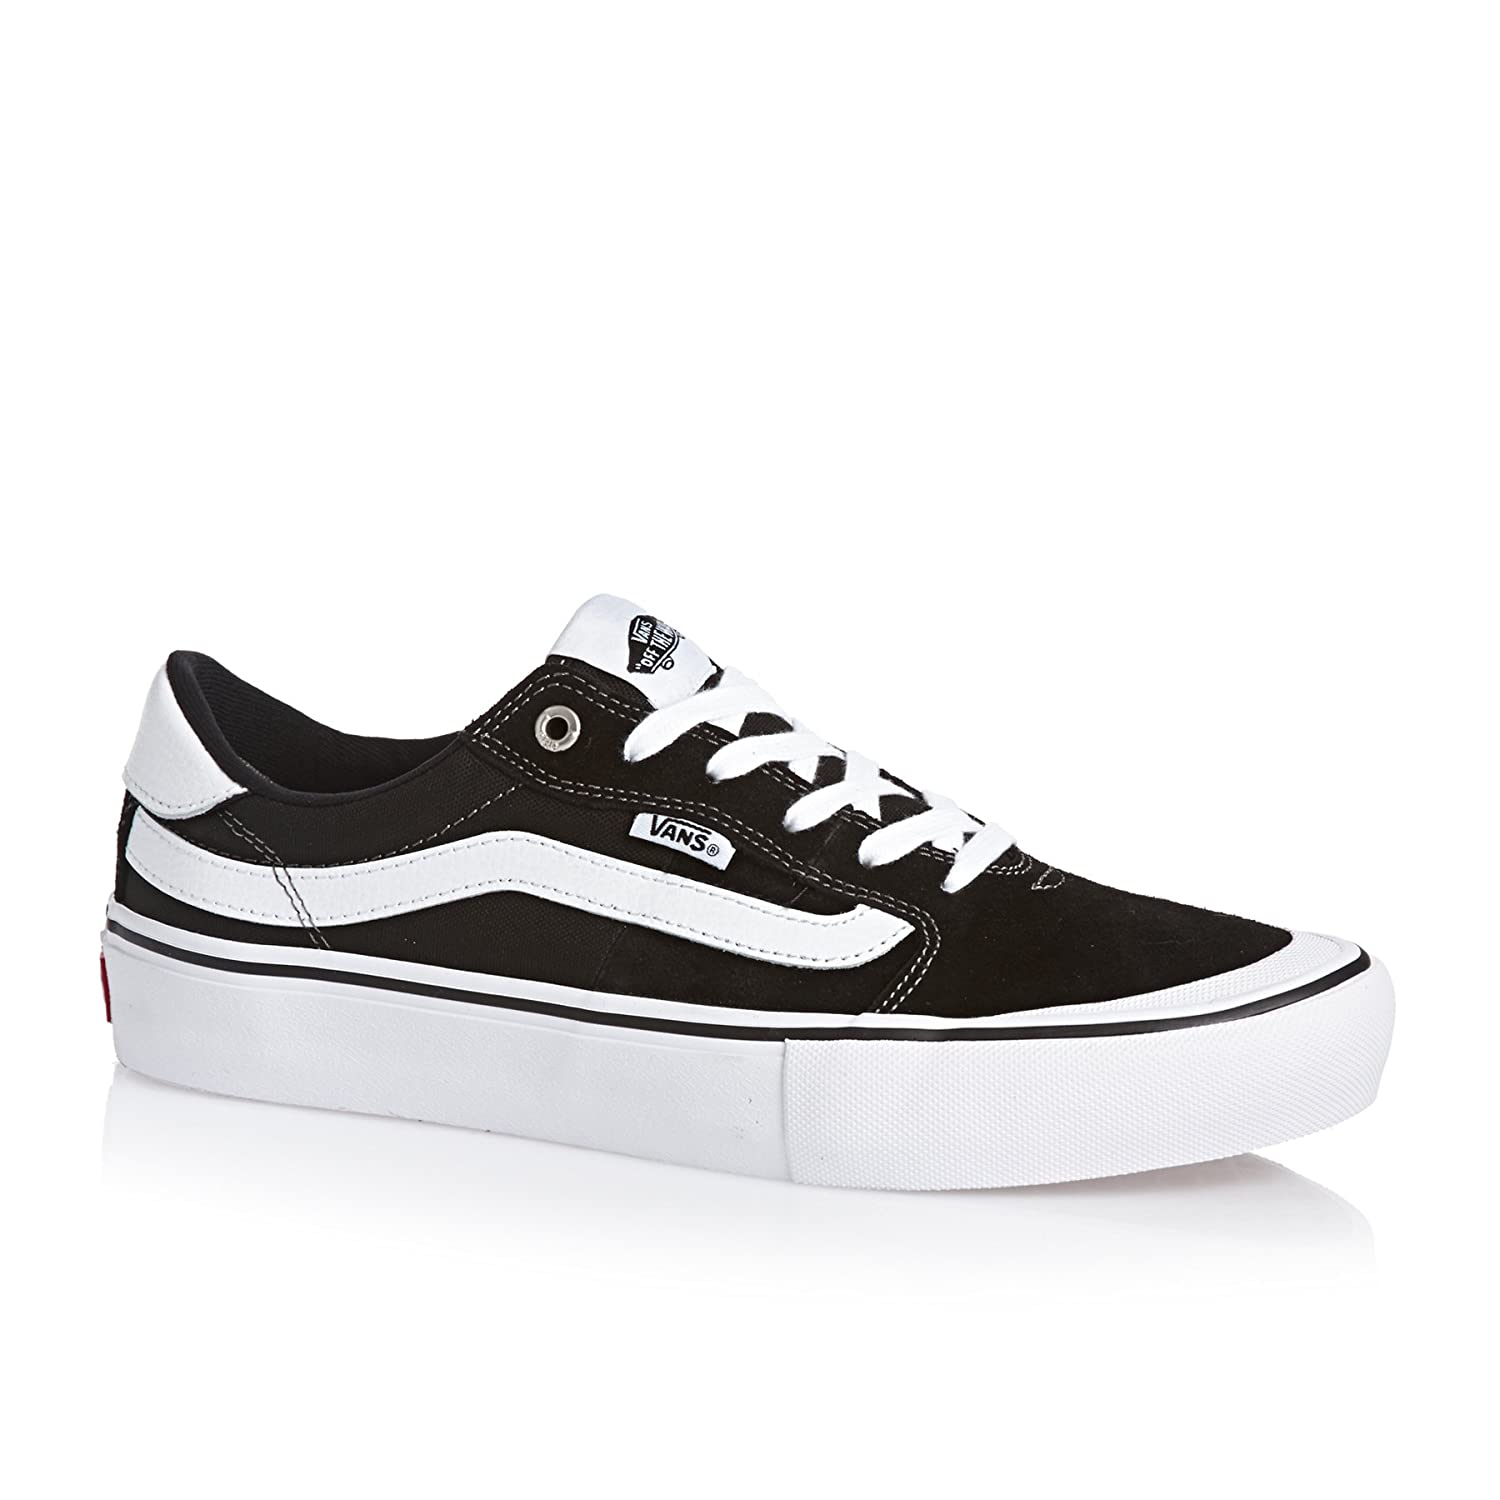 vans wide shoes > OFF38% Discounts